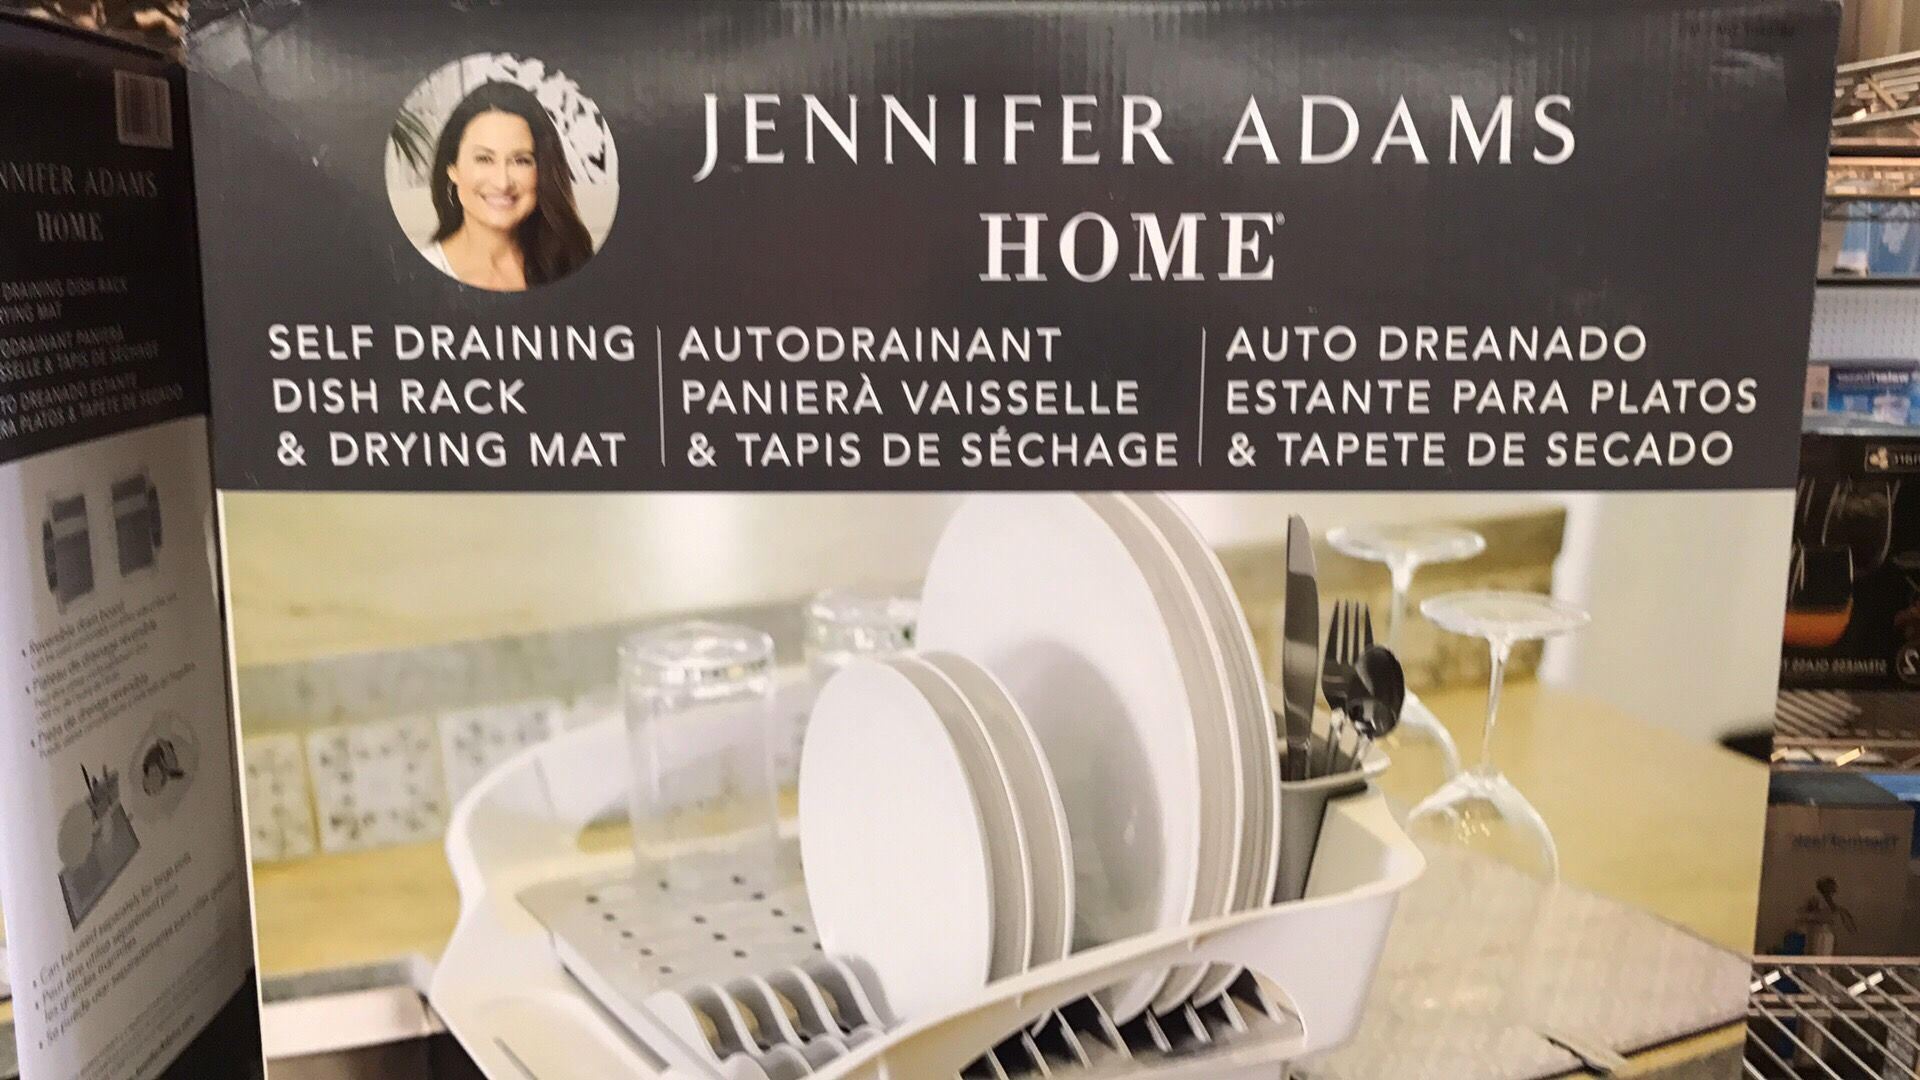 Dry your dishes safely and quickly with the jennifer adams